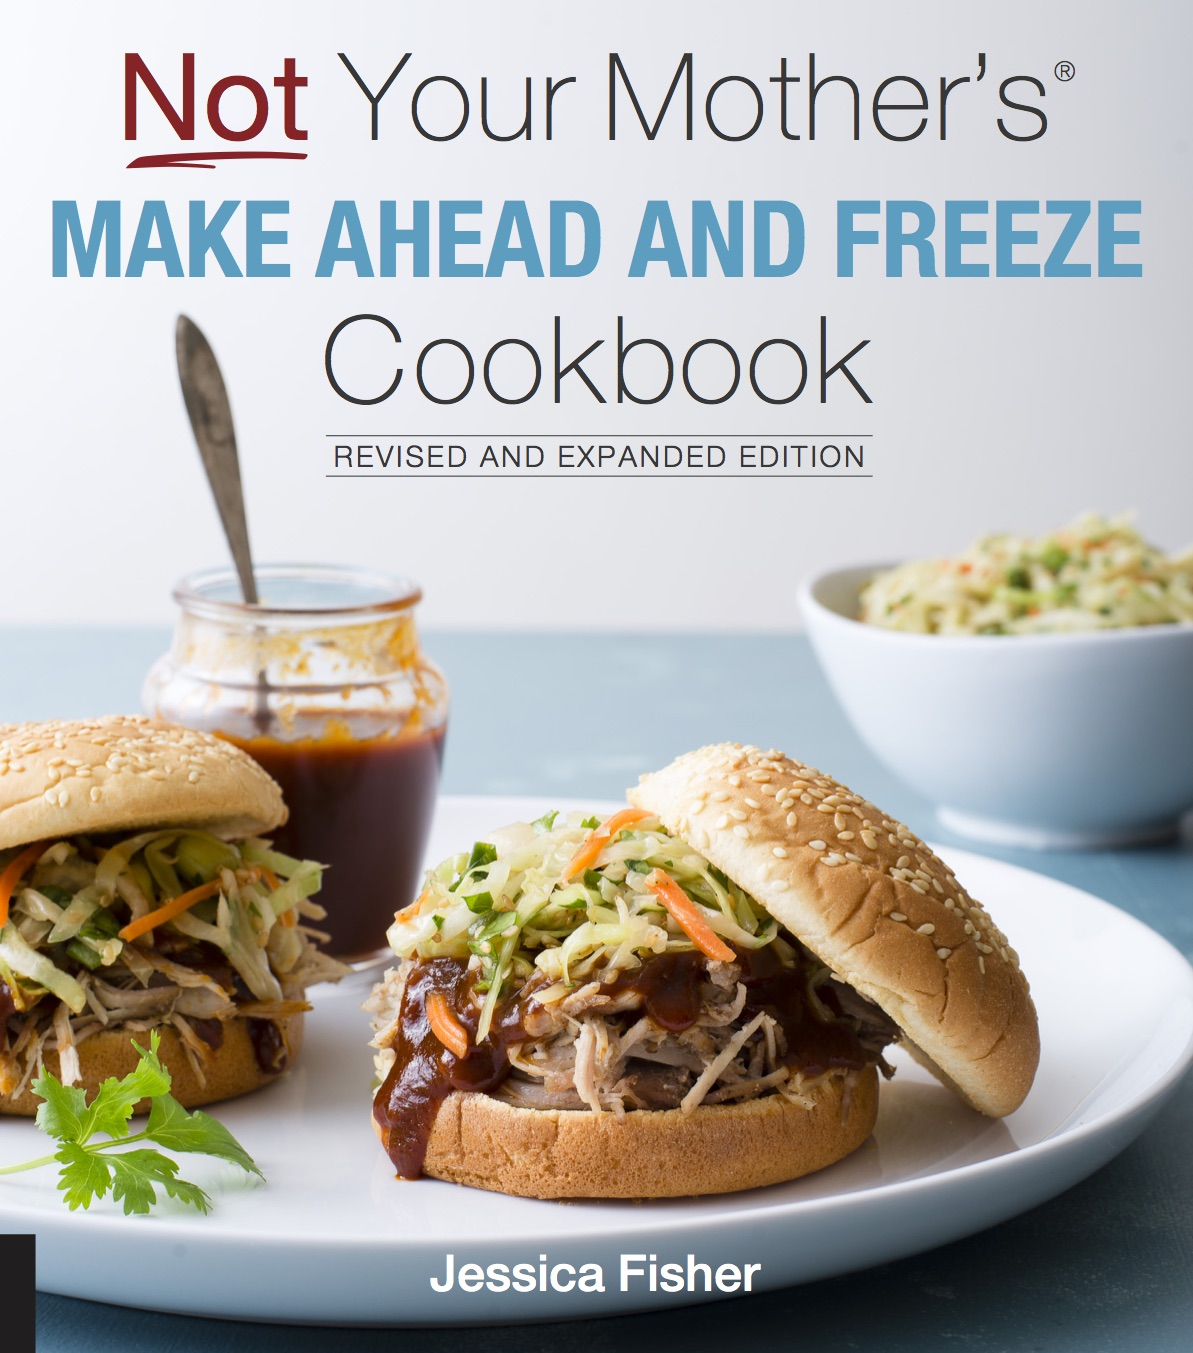 Freezer Cooking Basics: What You Need to Fill the Freezer | Life as Mom